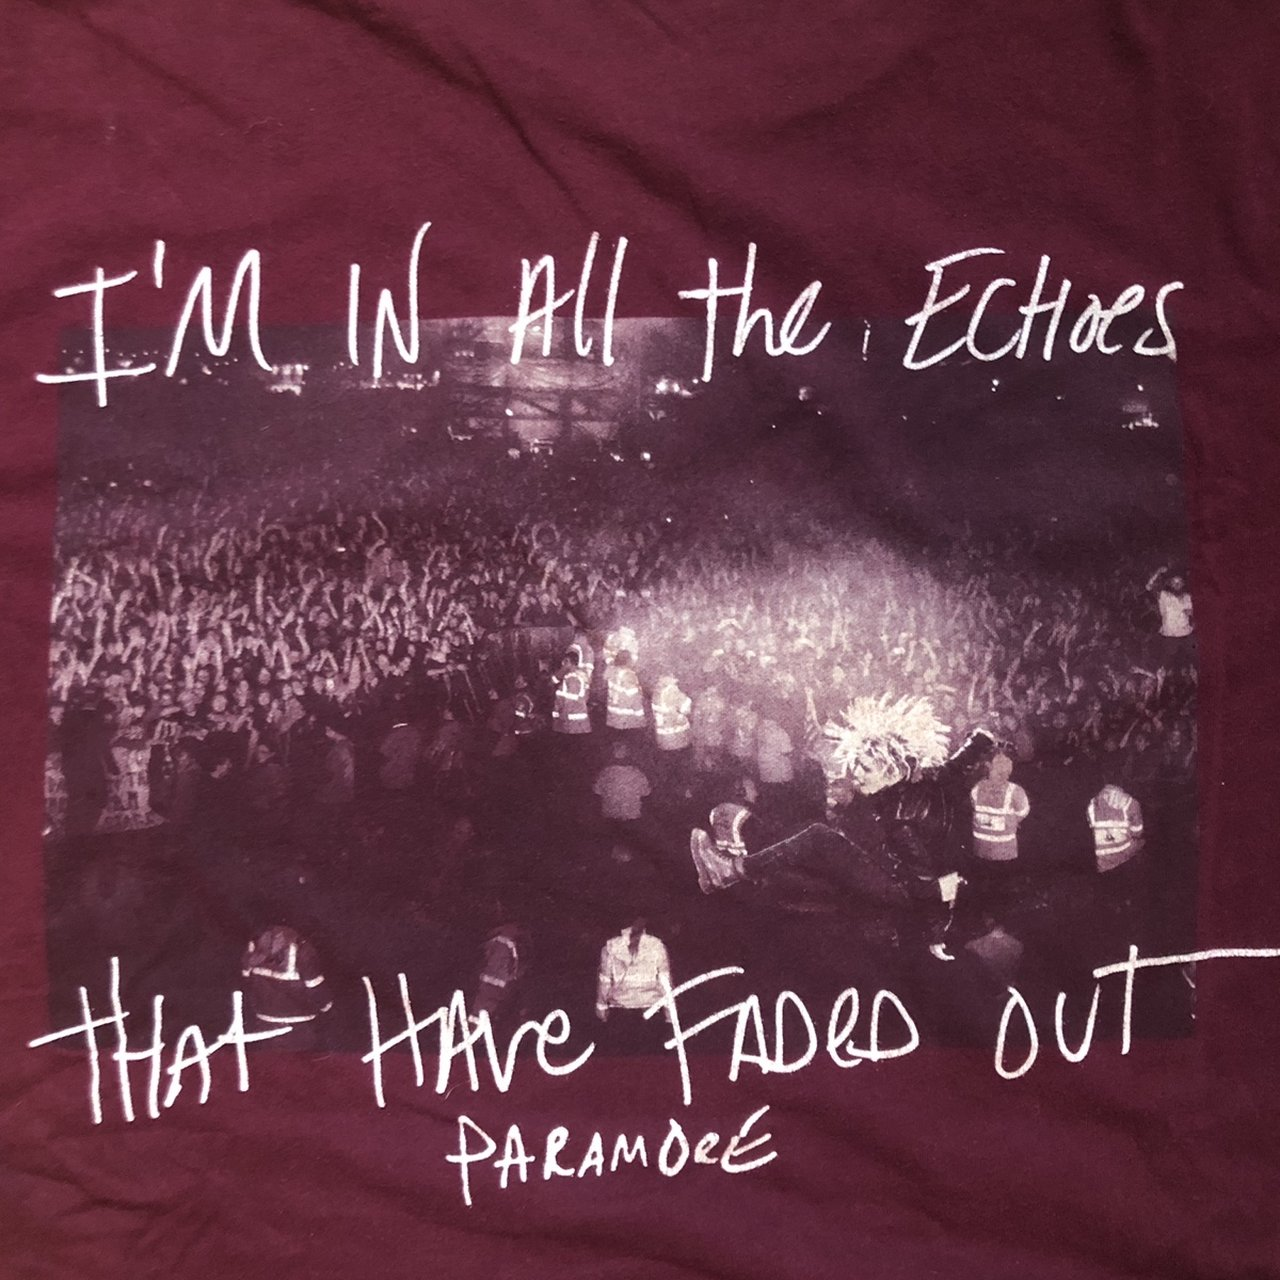 b68e1d9ae17 PARAMORE ECHOES TOUR TSHIRT - SIZE MEDIUM bought on the a - Depop